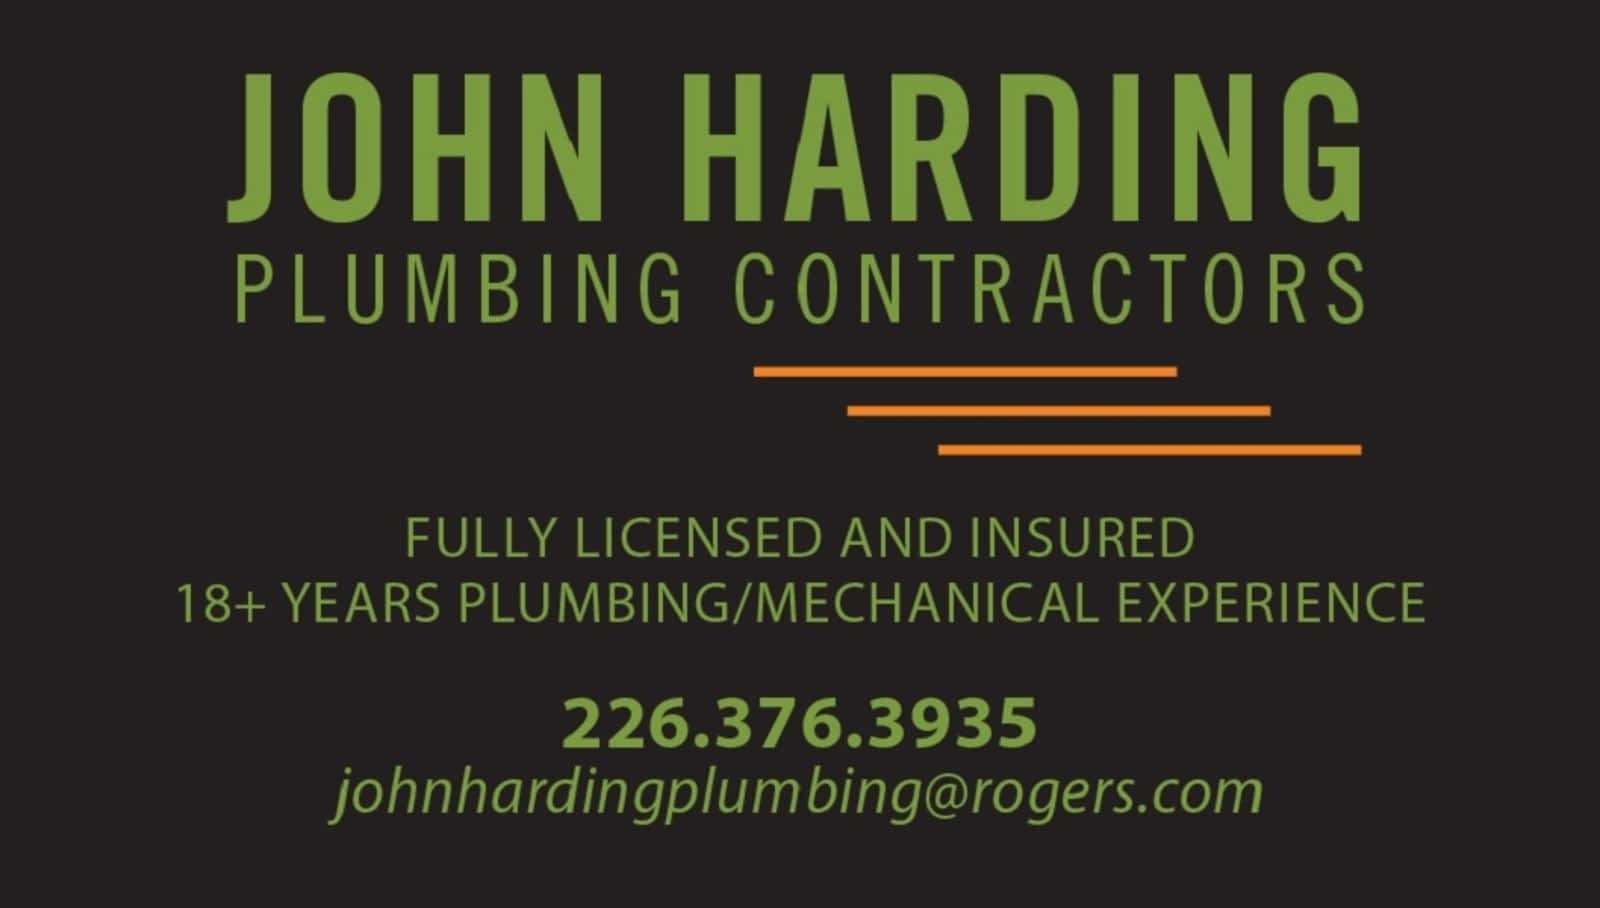 contractors services builtrite construction contractor plumbing rite built